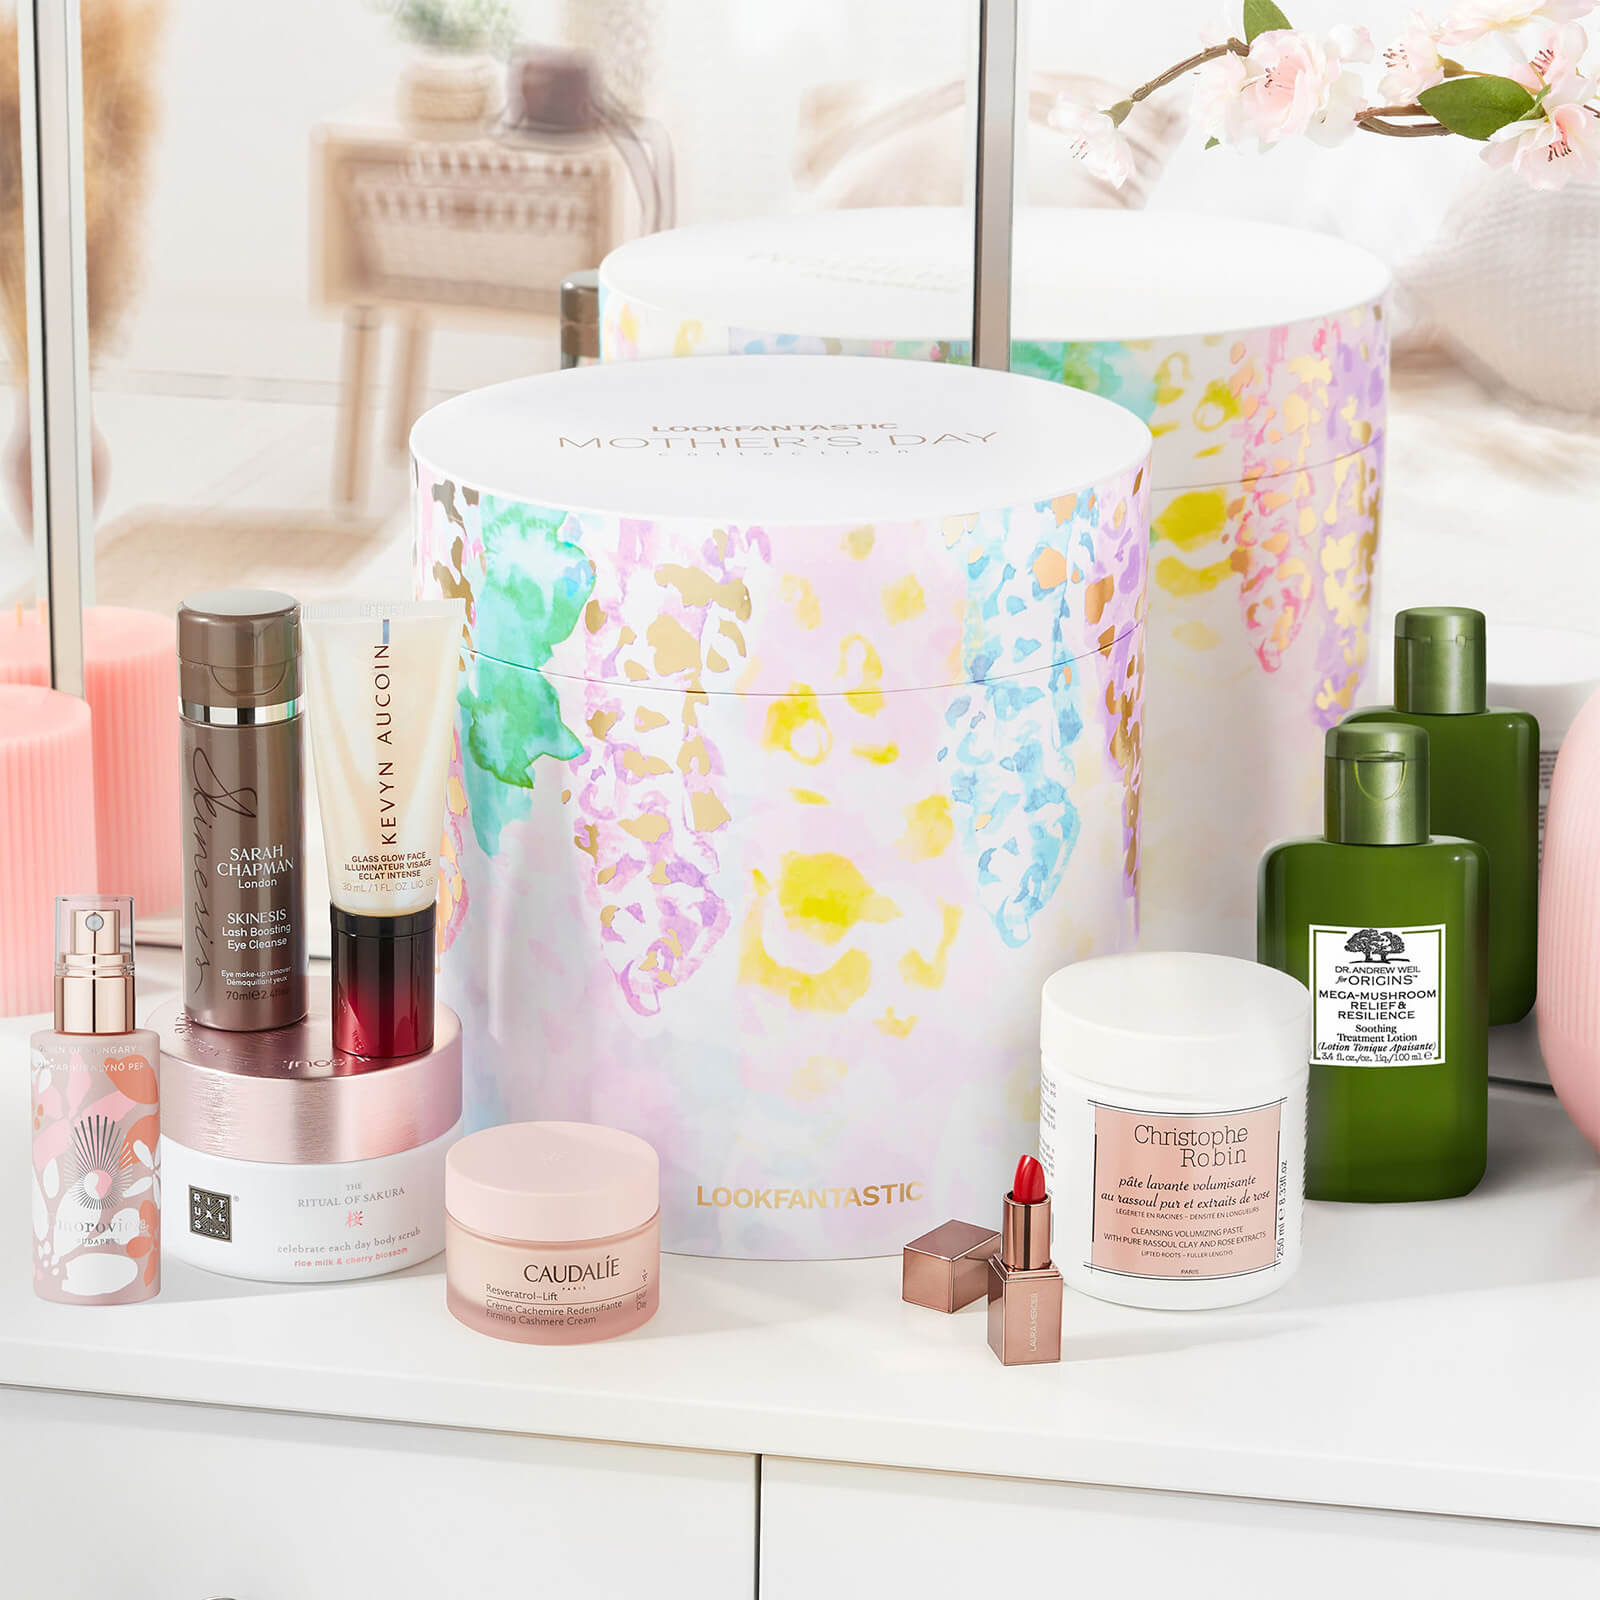 Lookfantastic Mother's Day Collection 2021 Contents Reveal!